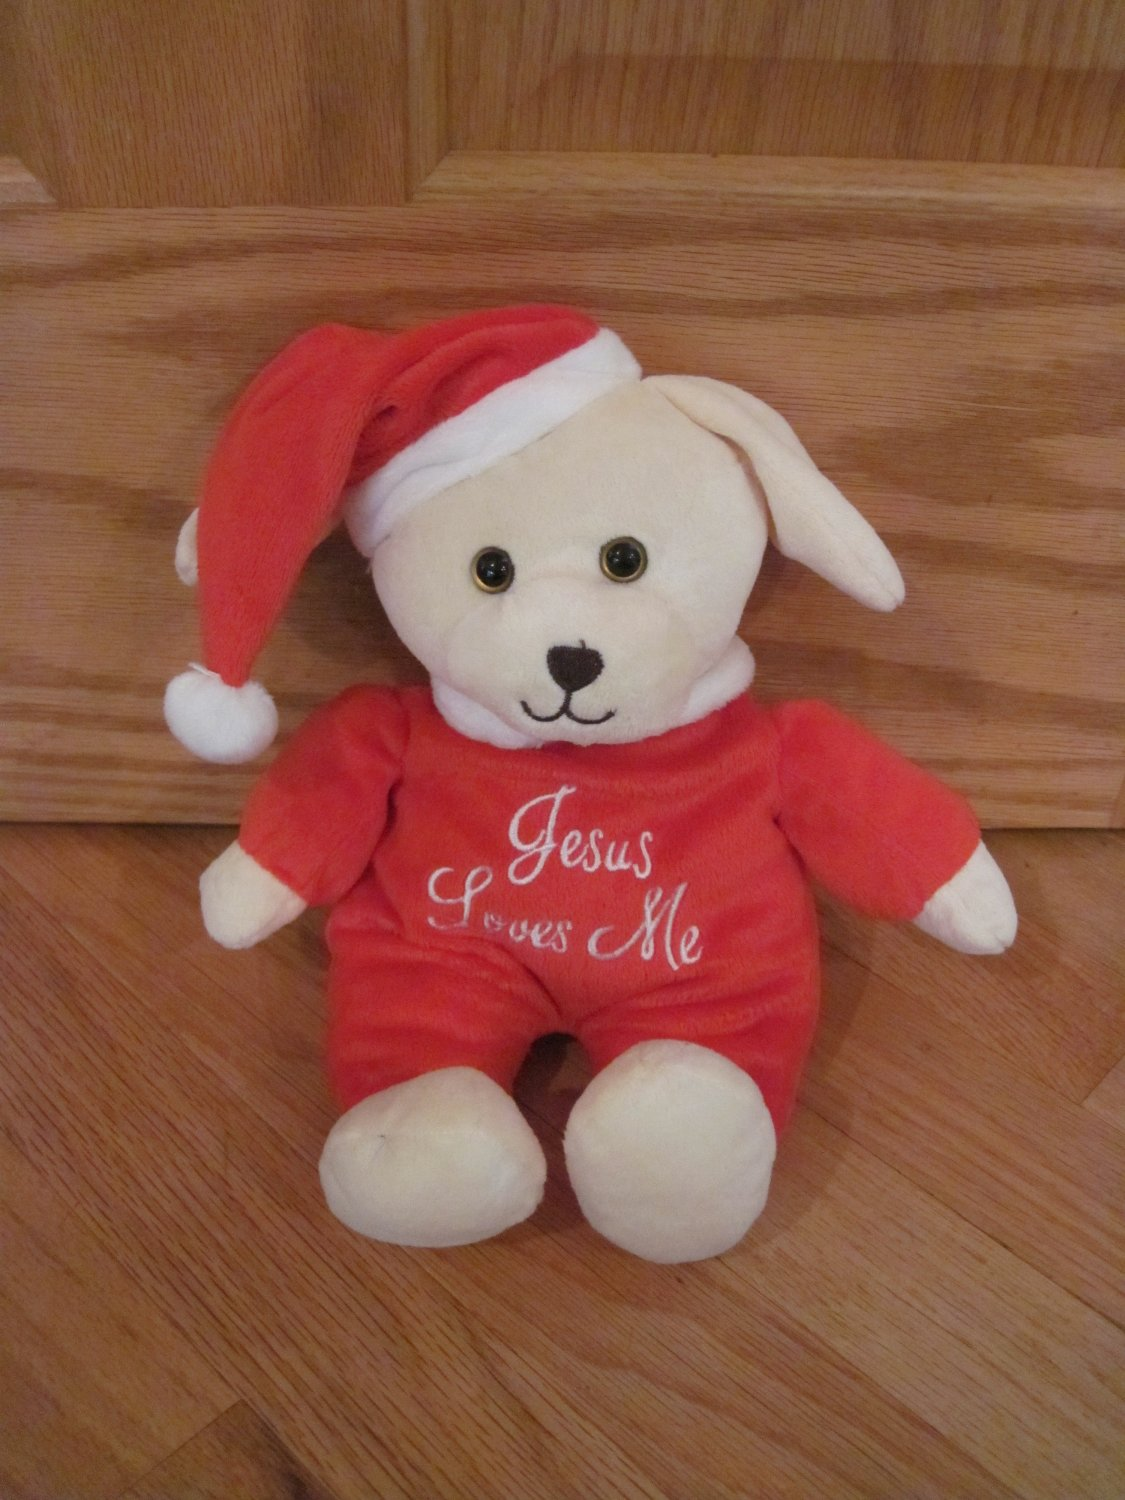 DanDee Cream Plush Singing Jesus Loves Me Puppy Dog Plush Toy Red Santa Suit Hat Christmas Toy